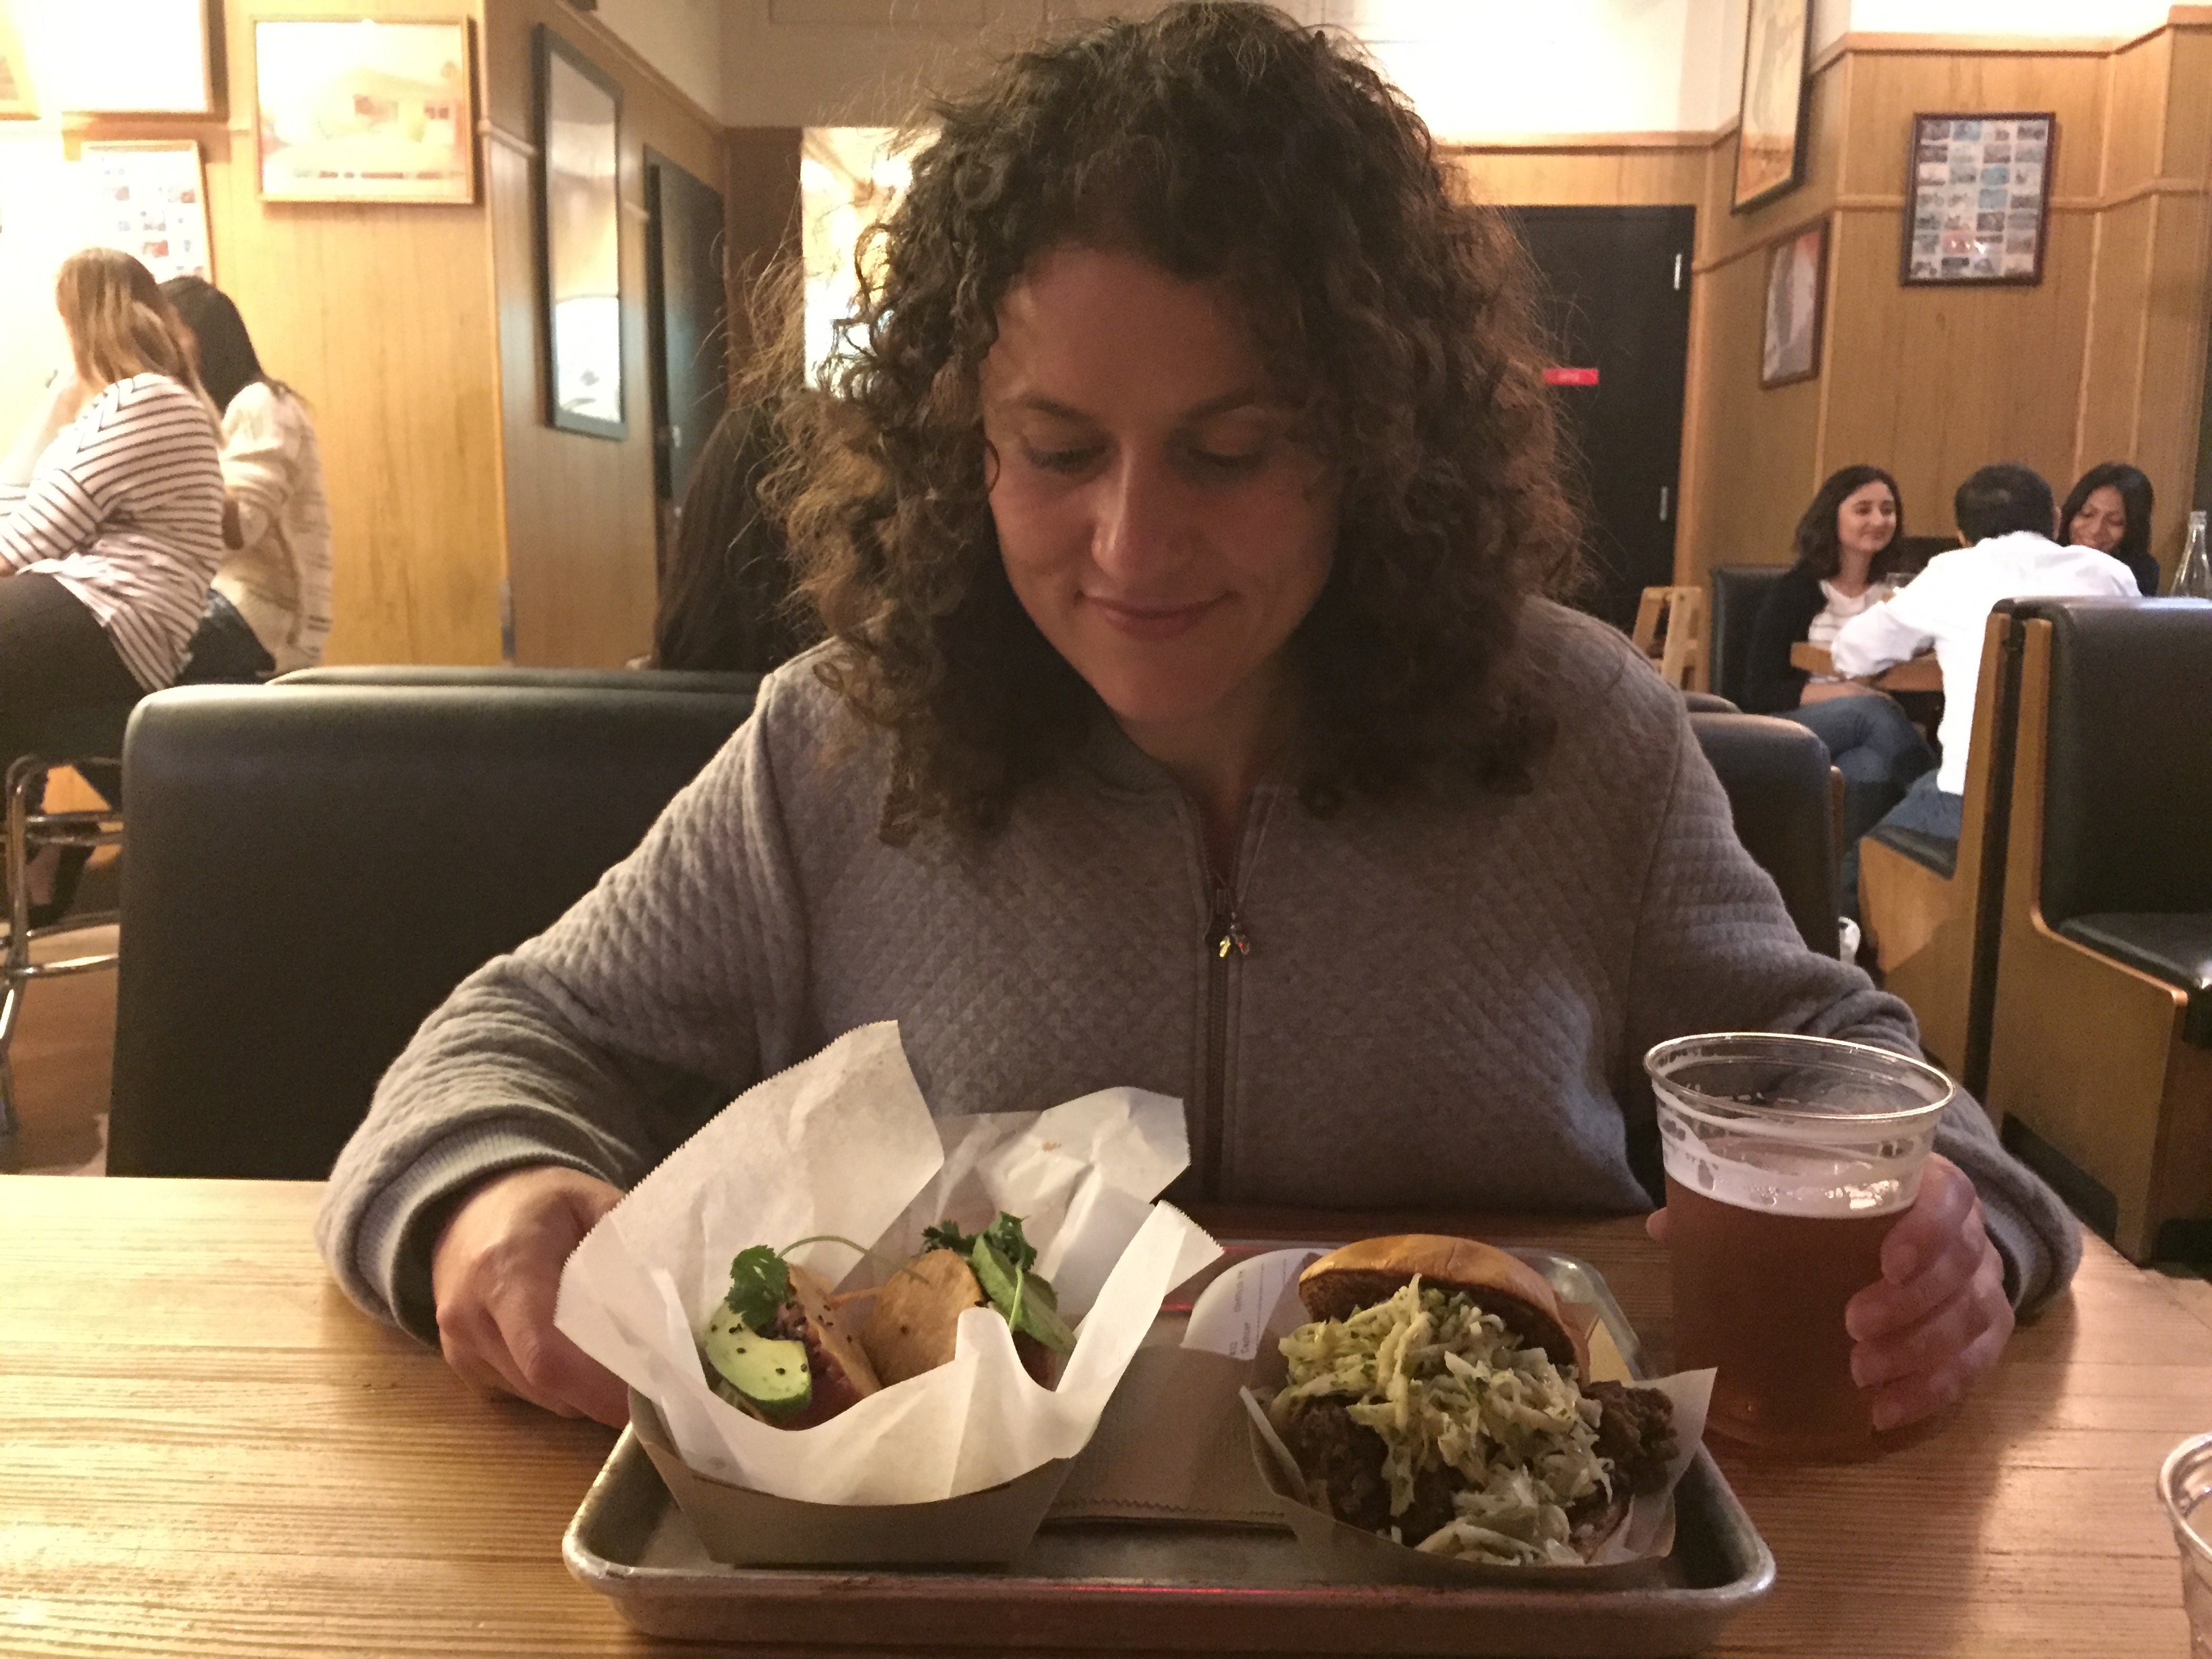 Girl eating a taco and beer